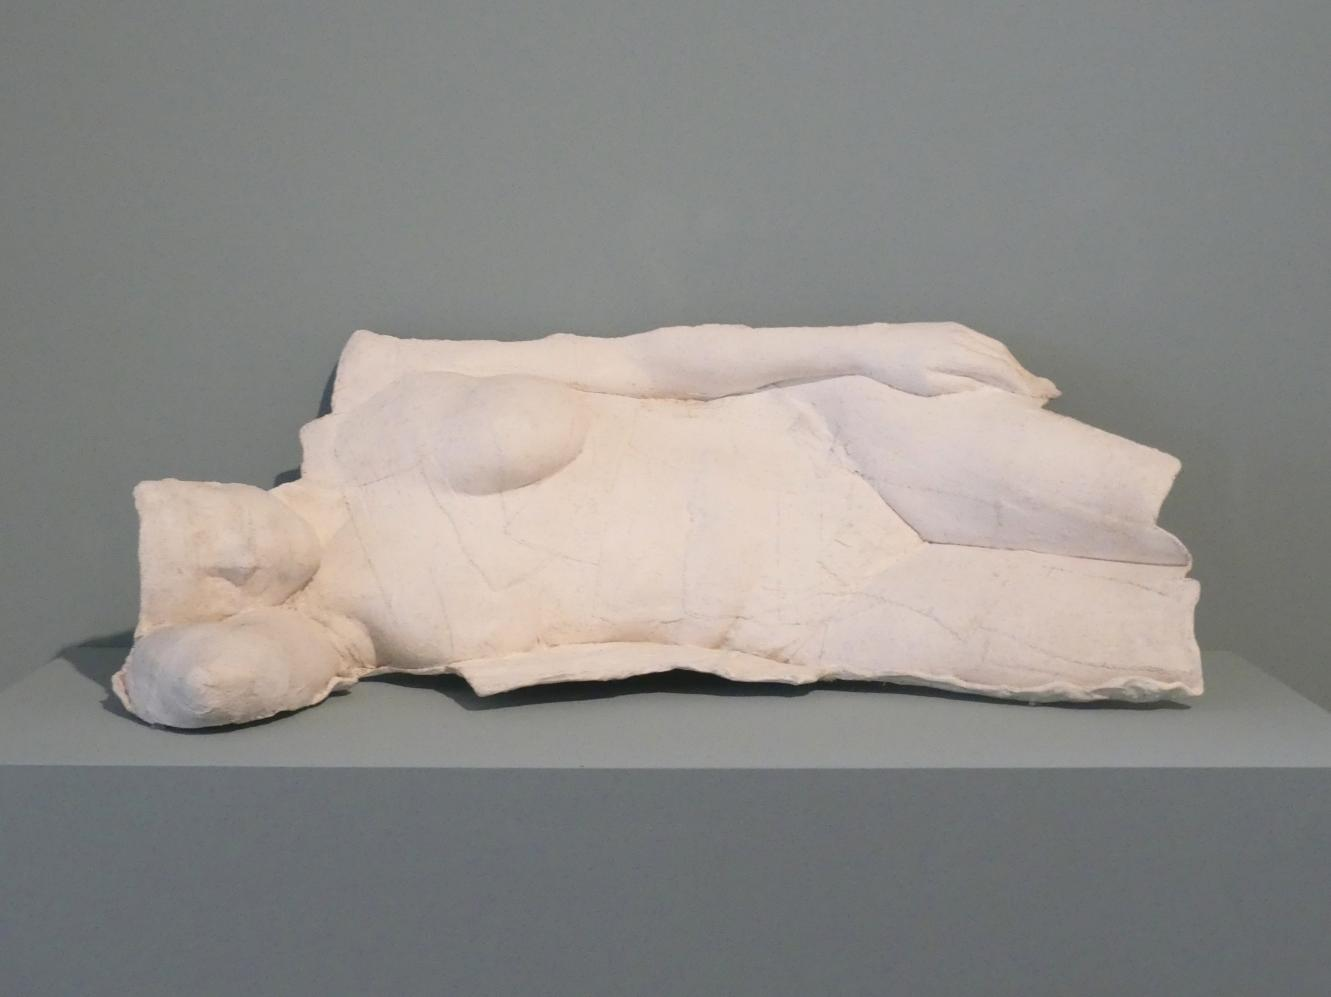 George Segal: Torso 8, 1970